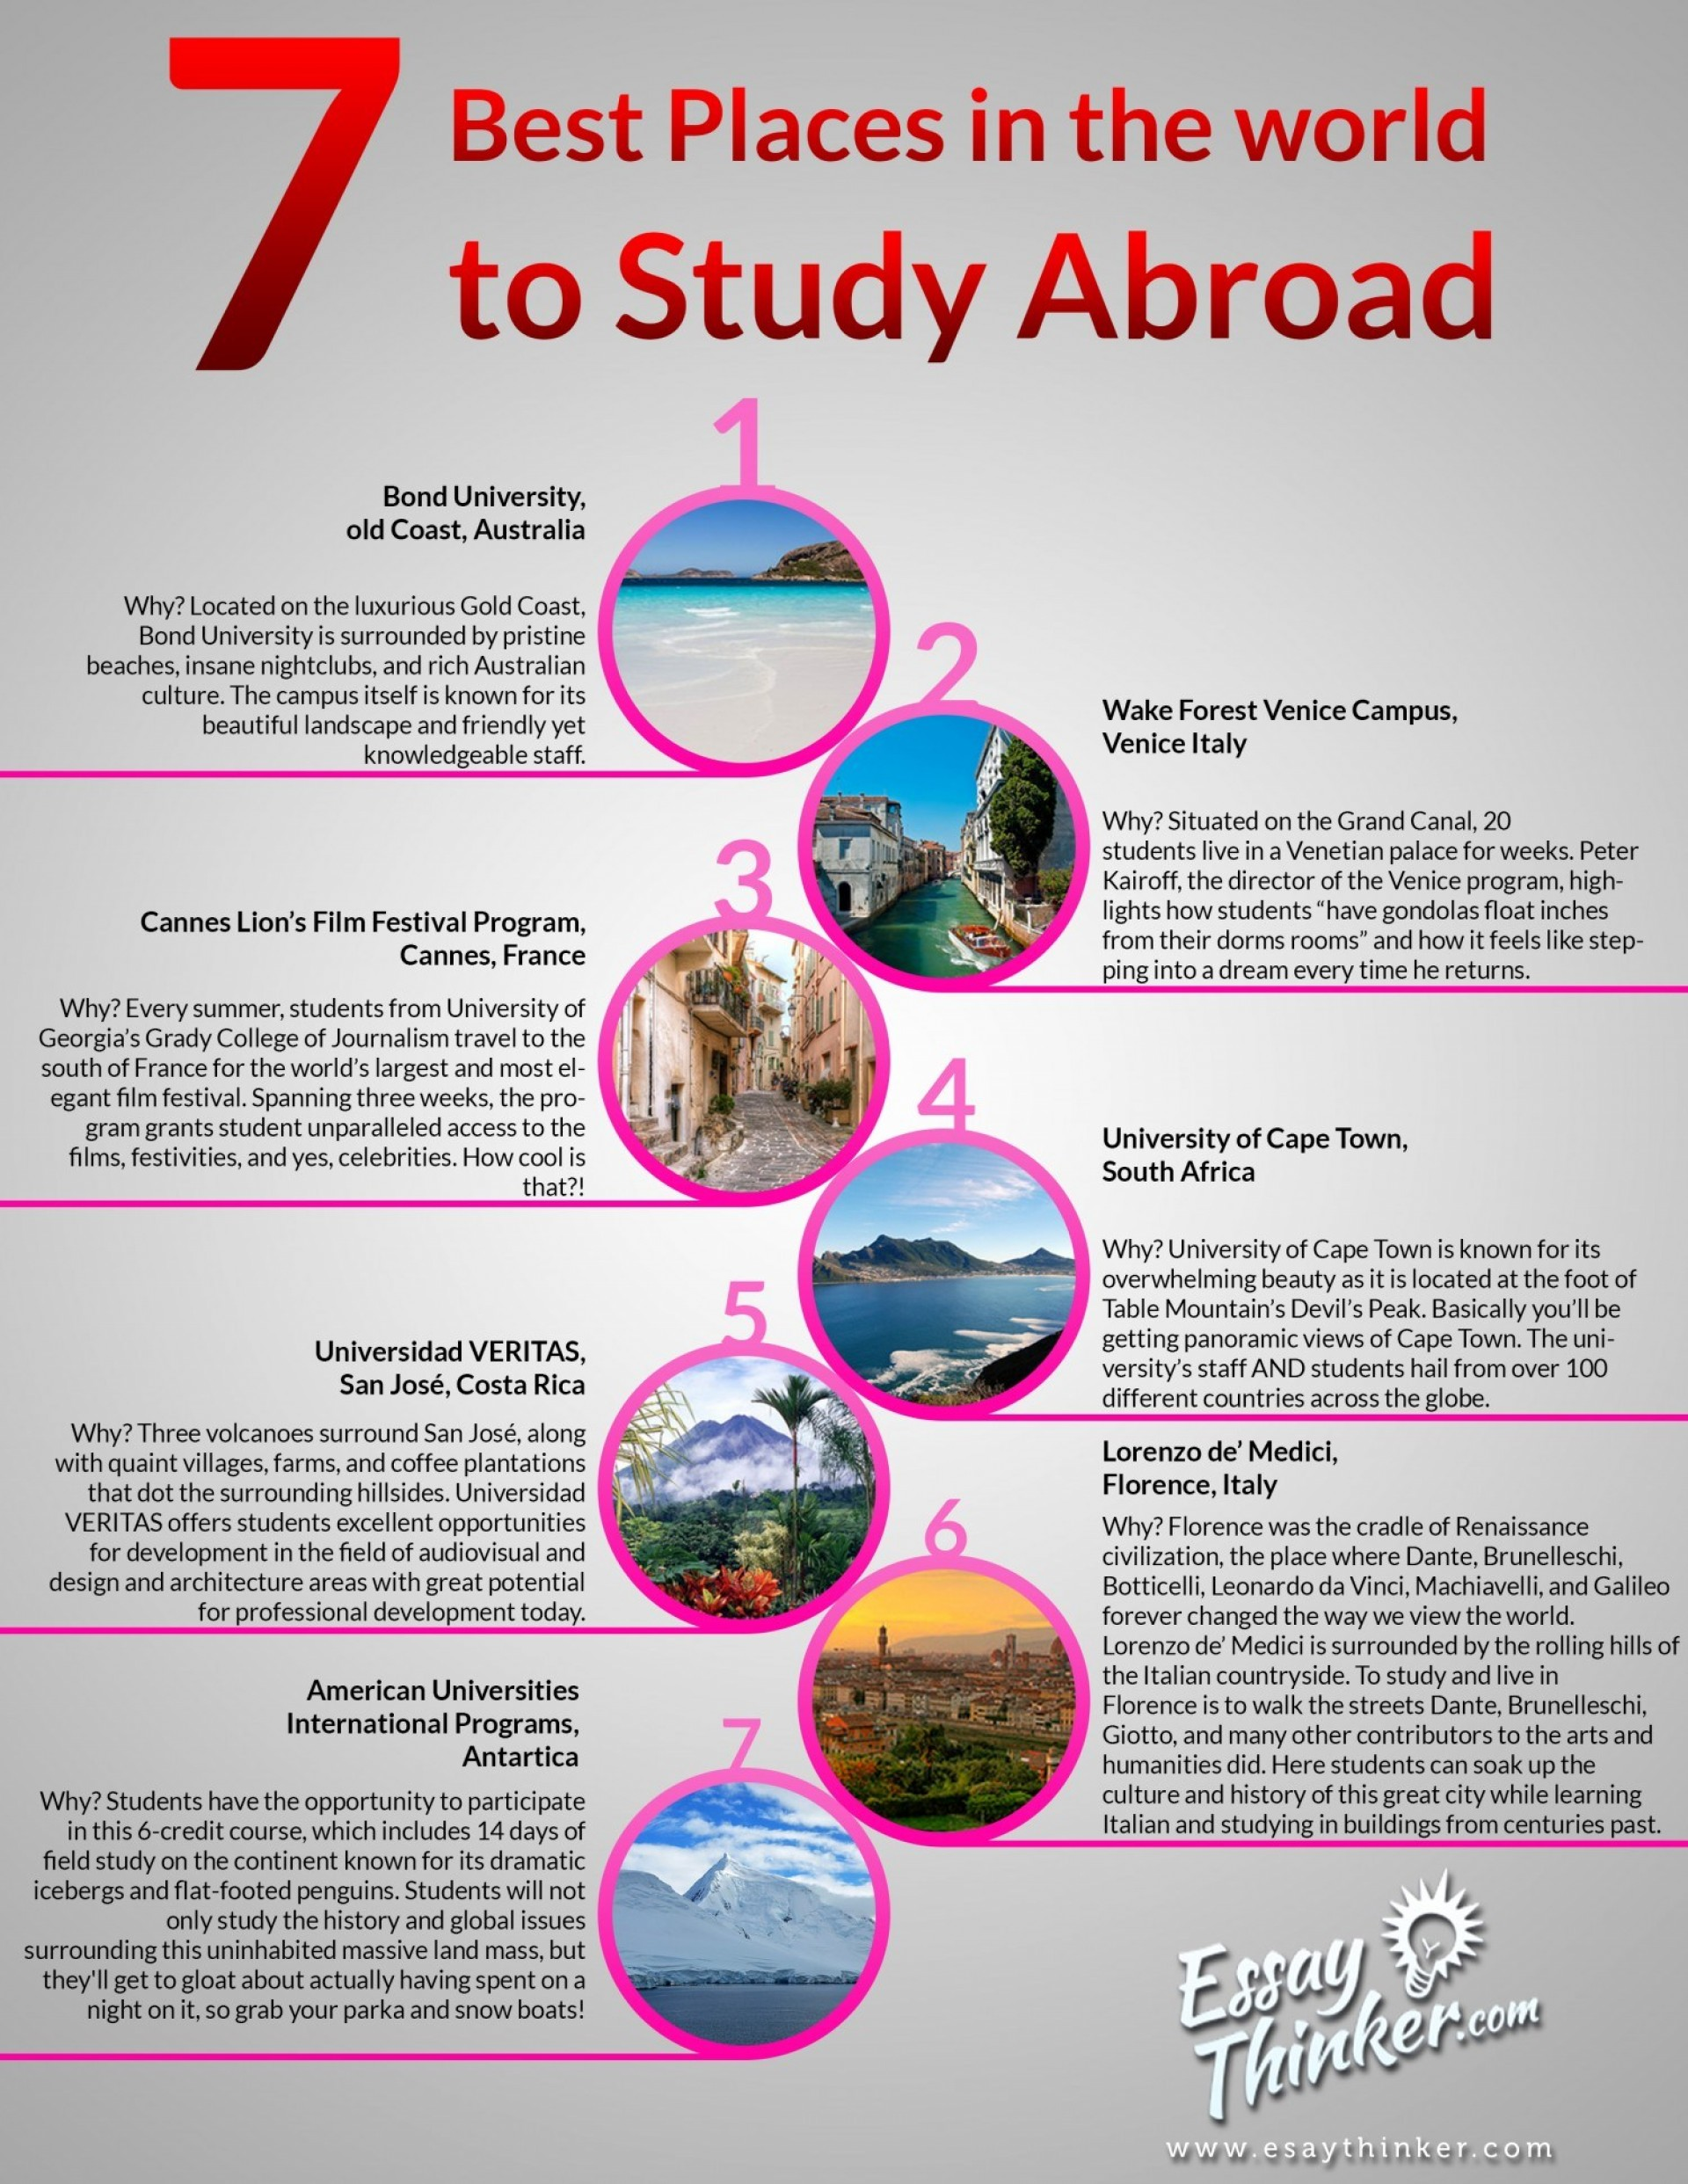 009 Studying Abroad Essay Example Best Places In The World To Study 53f49ac1d4c9b W1500 Beautiful Sample Ielts Conclusion Pdf 1920